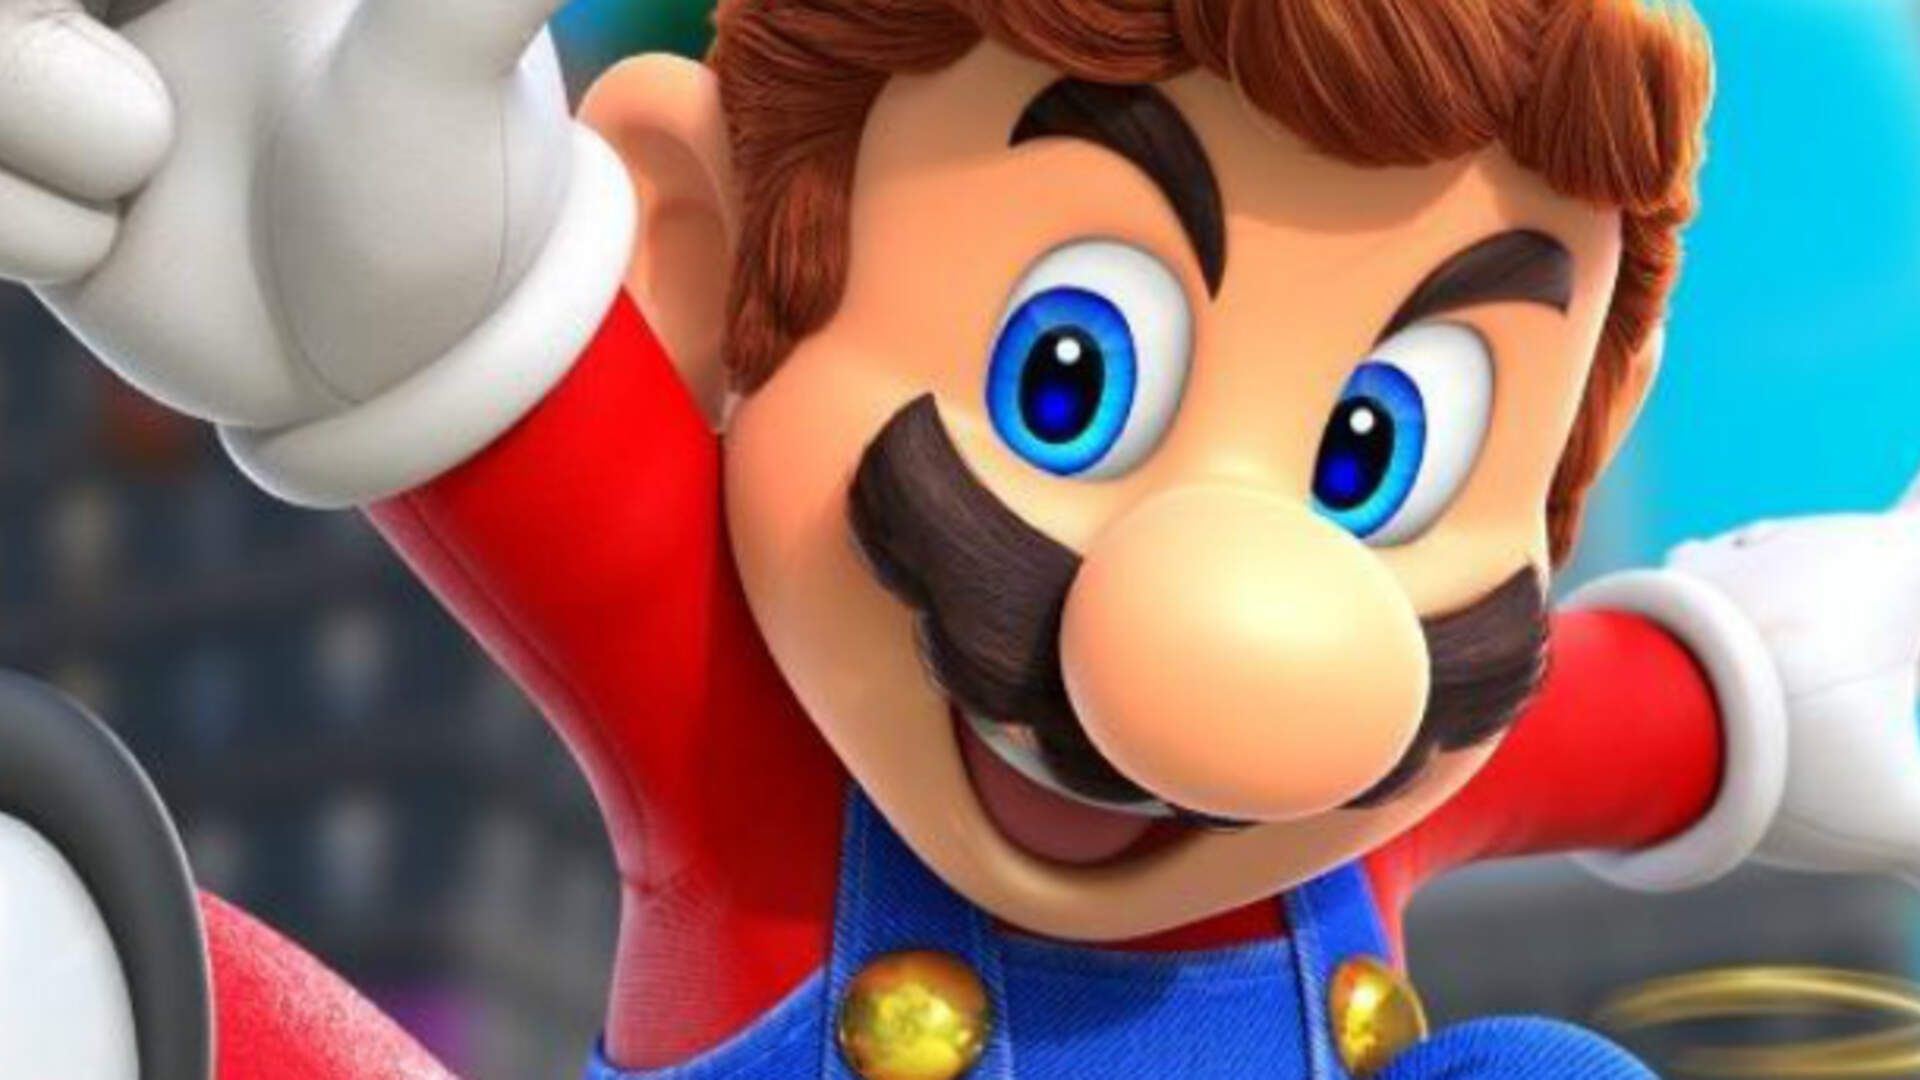 Super Mario Animated Movie Announced, Shigeru Miyamoto Co-Producing